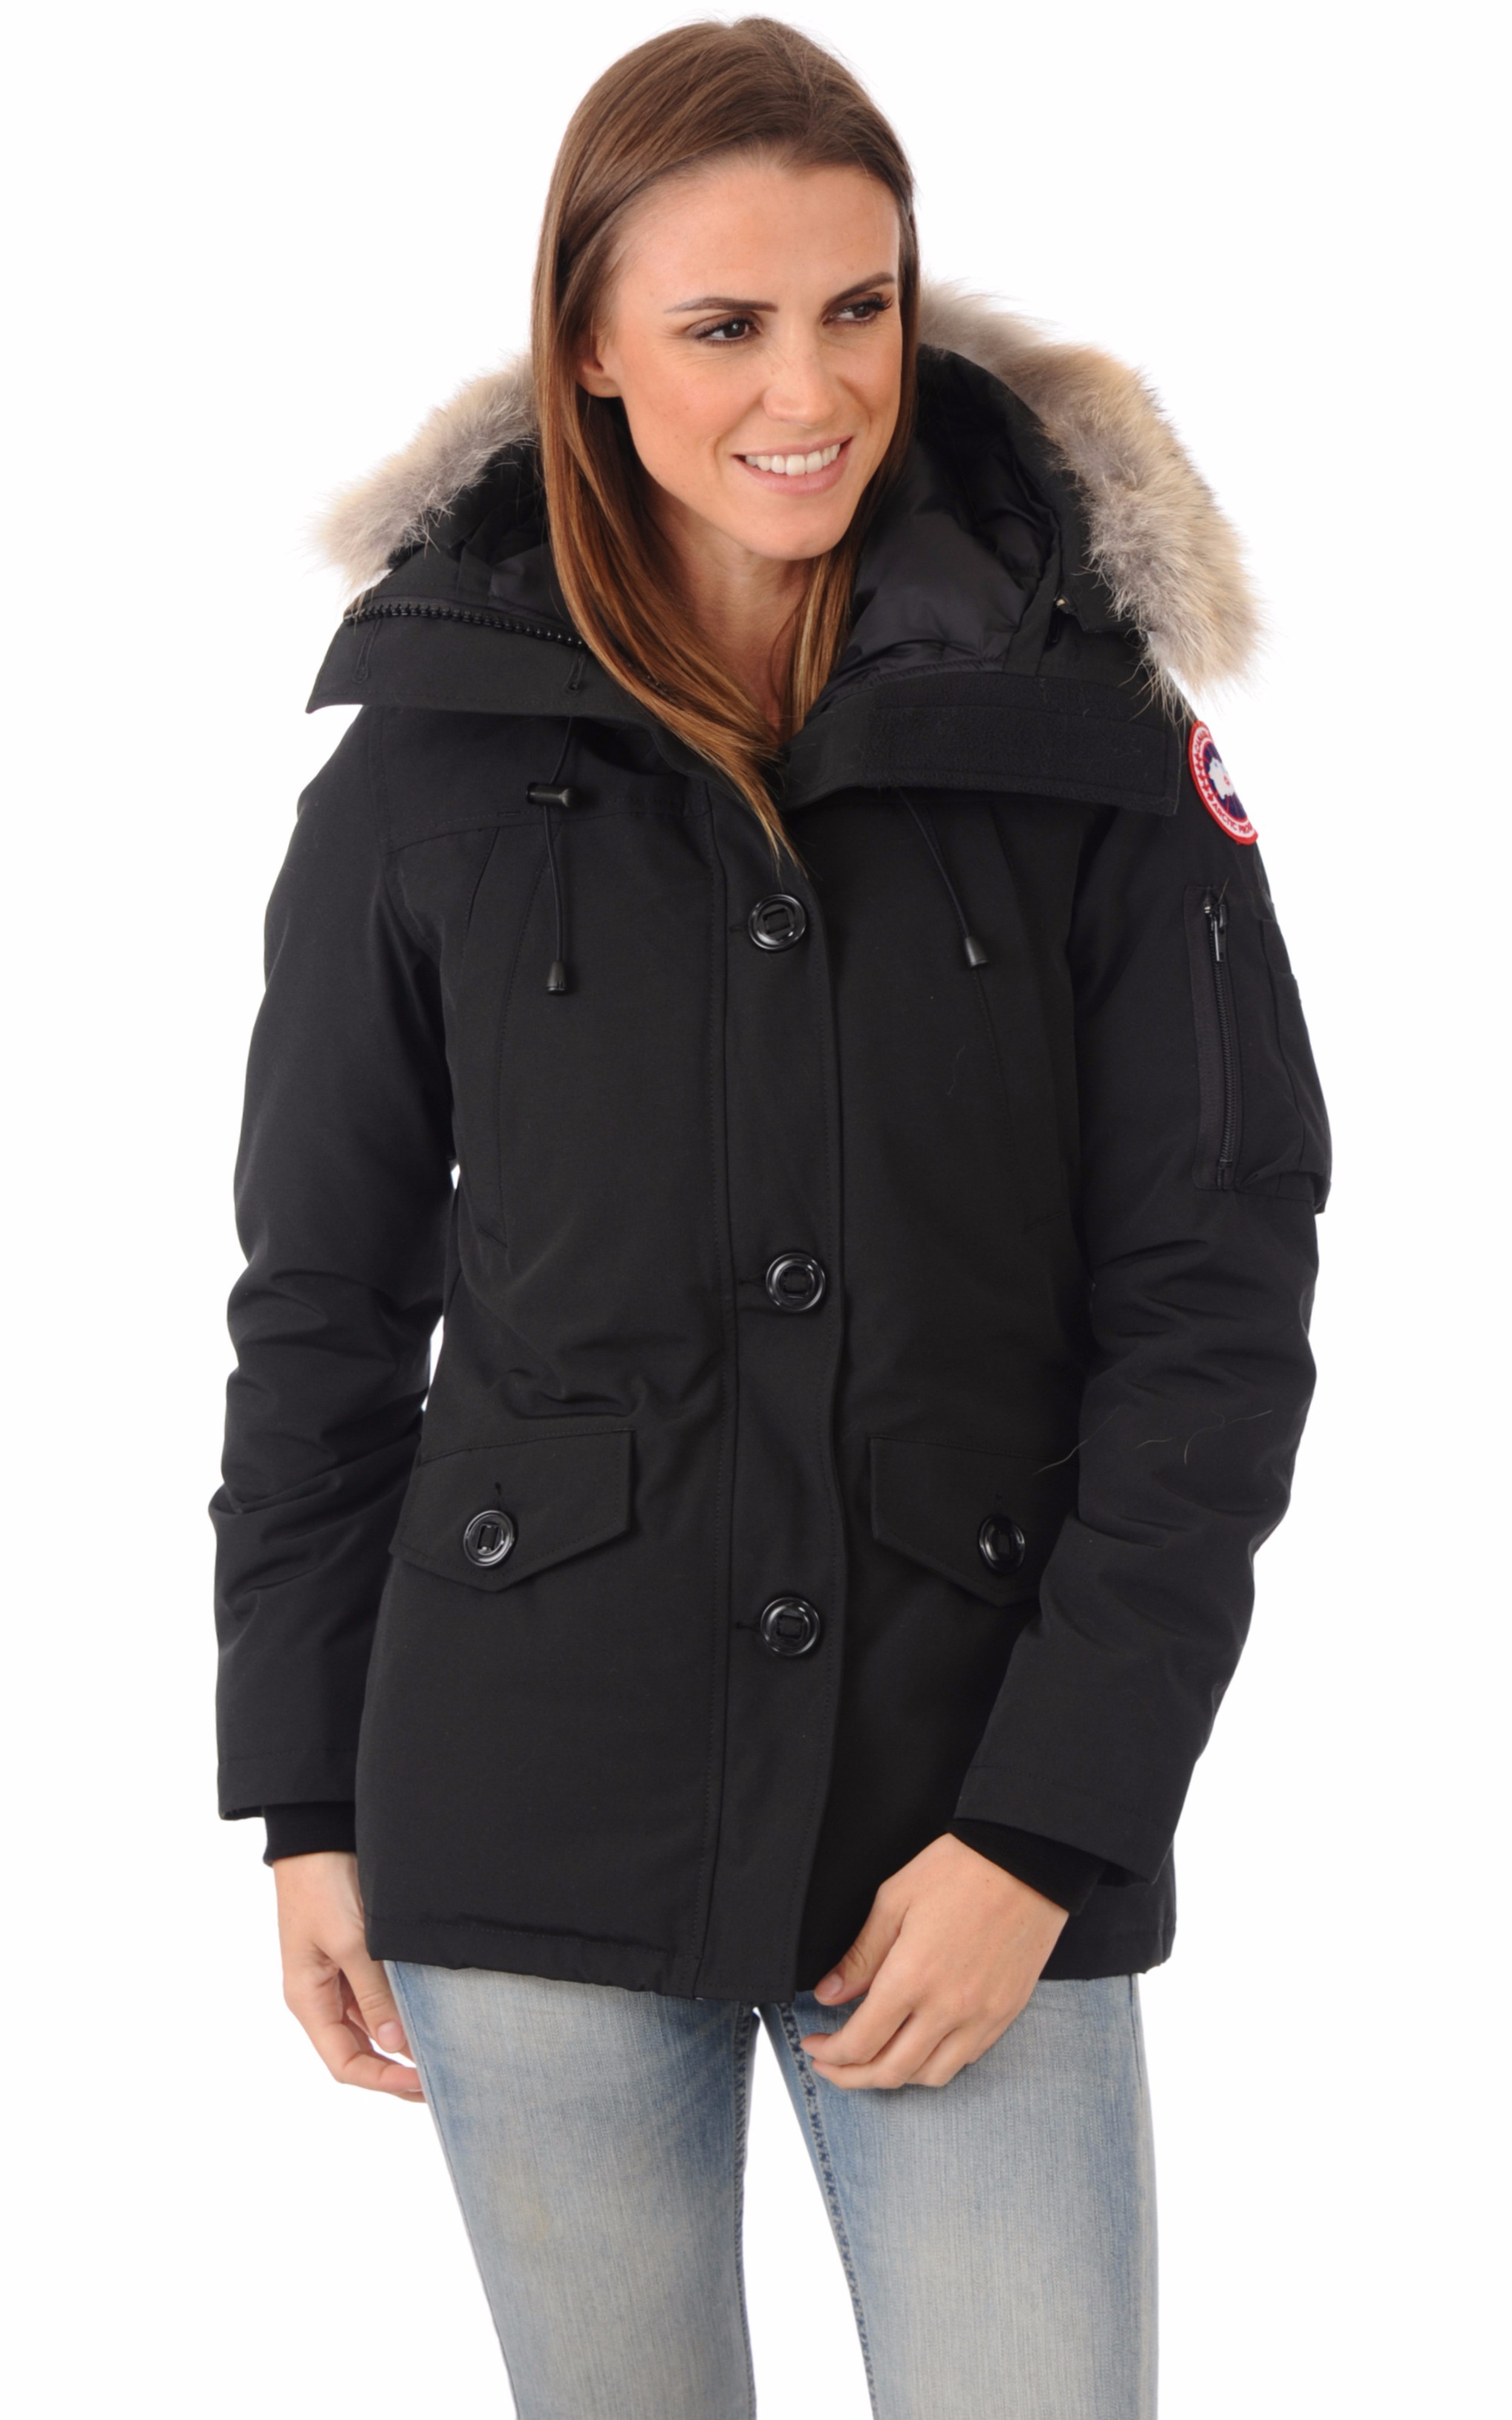 parka montebello black canada goose la canadienne doudoune parka textile noir. Black Bedroom Furniture Sets. Home Design Ideas